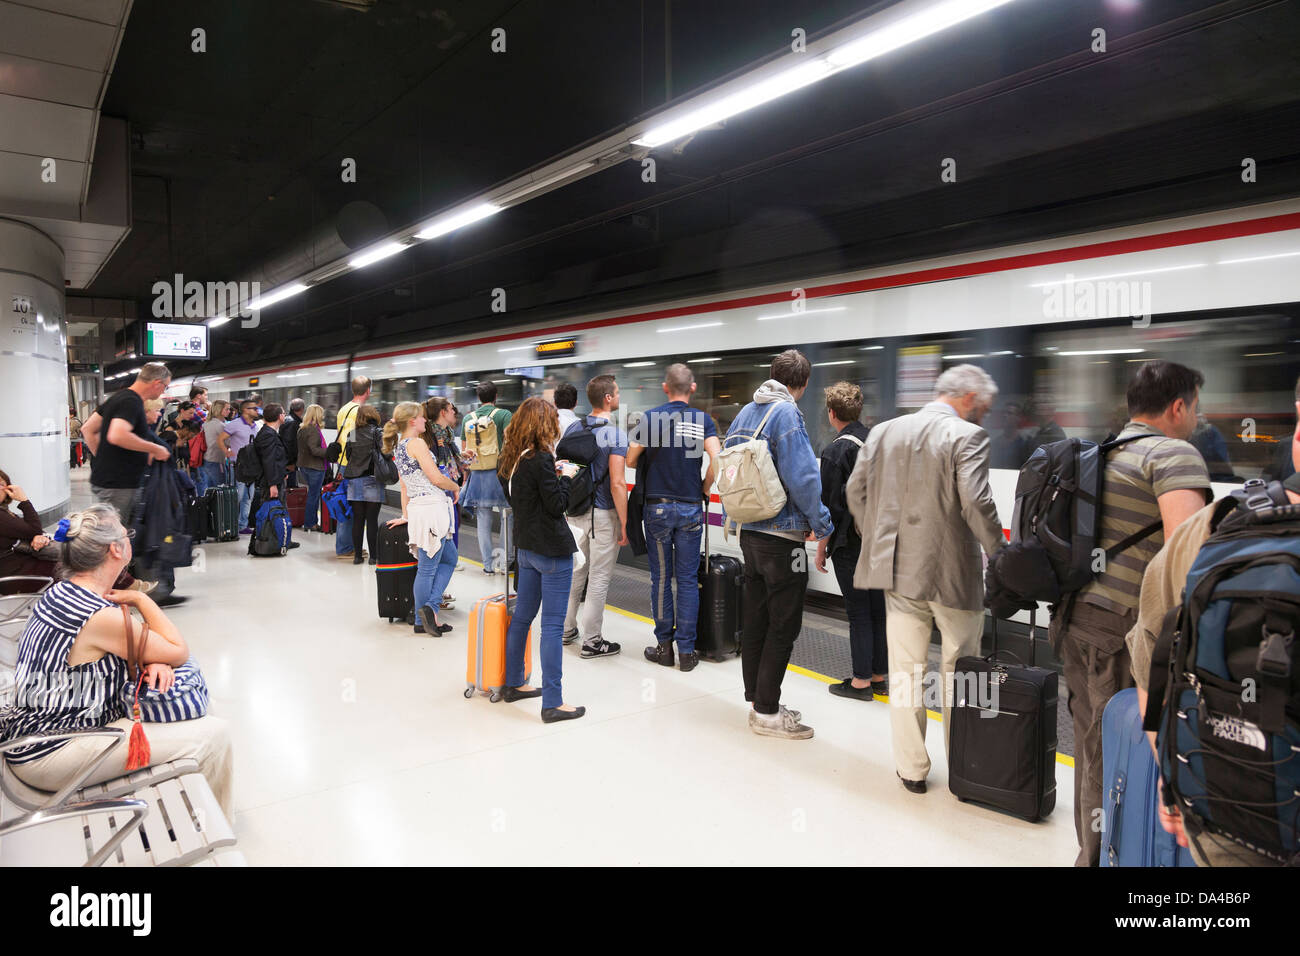 Passengers waiting on railway platform to board arriving train. - Stock Image